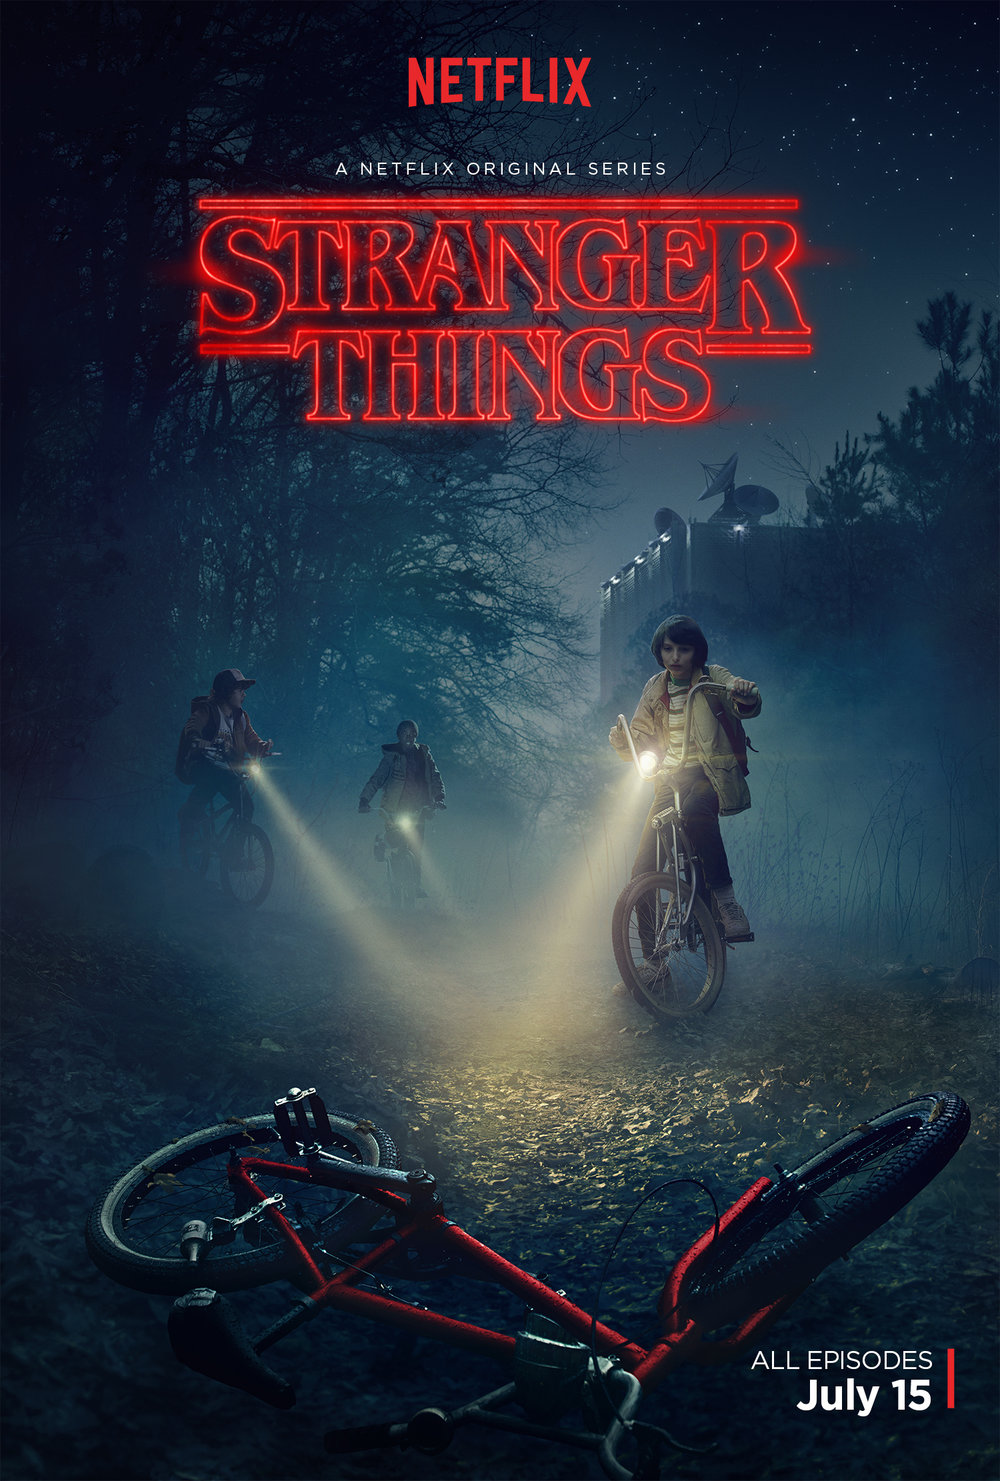 stranger-things-poster-netflix.jpg